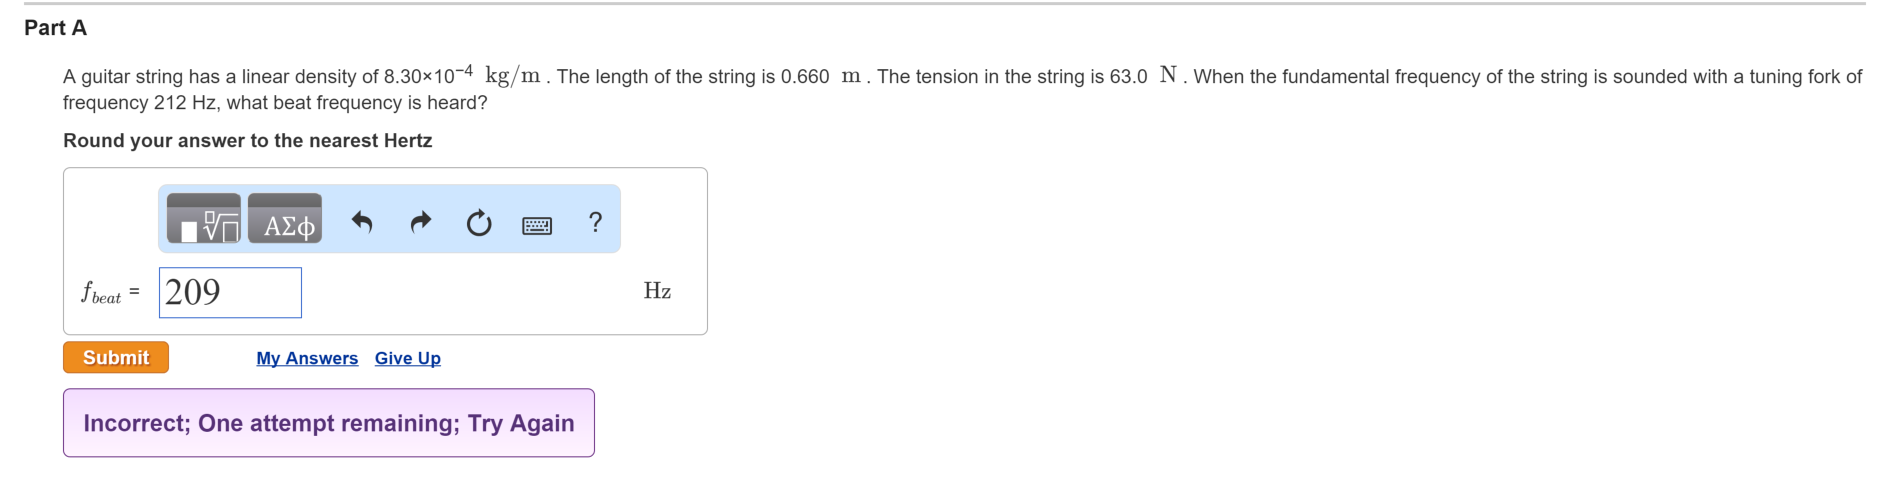 Solved a guitar string has a linear density of 830104 part a a guitar string has a linear density of 83010 4 kg pooptronica Images